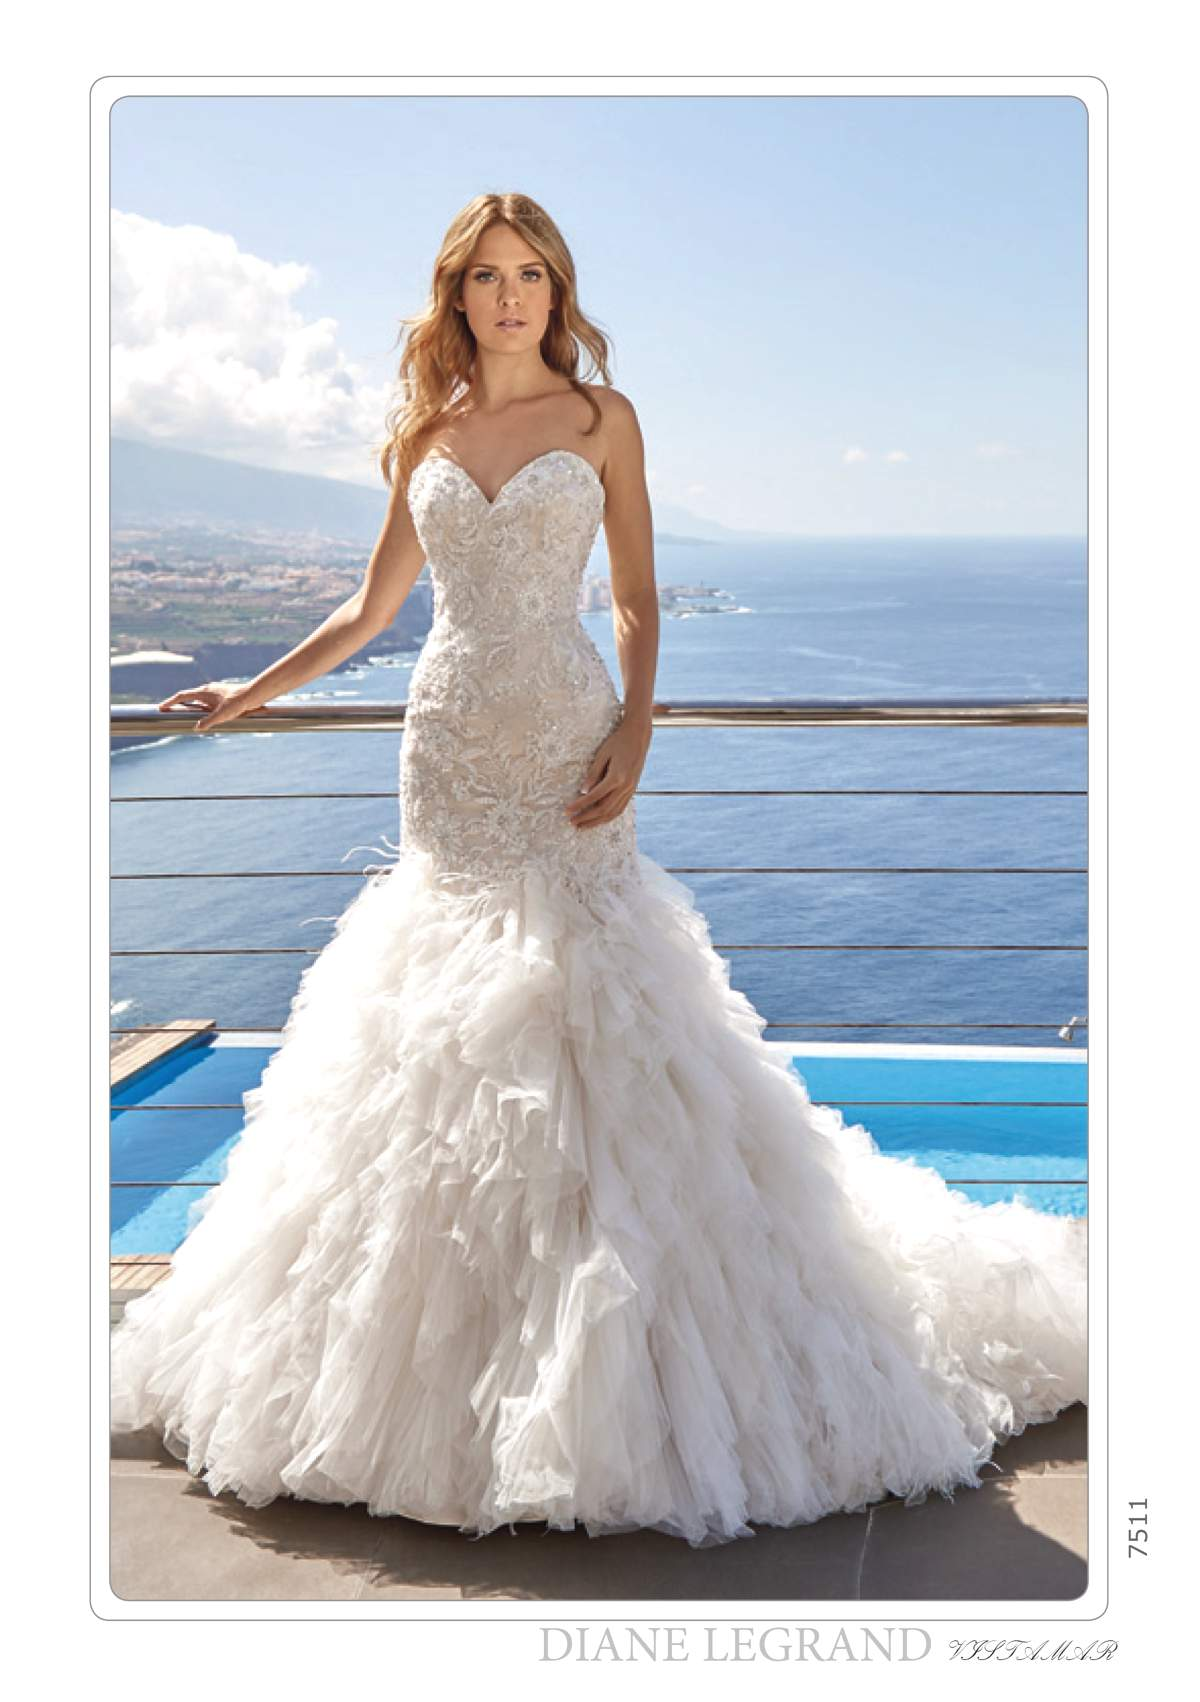 new collections Archives - Find Your Dream Dress